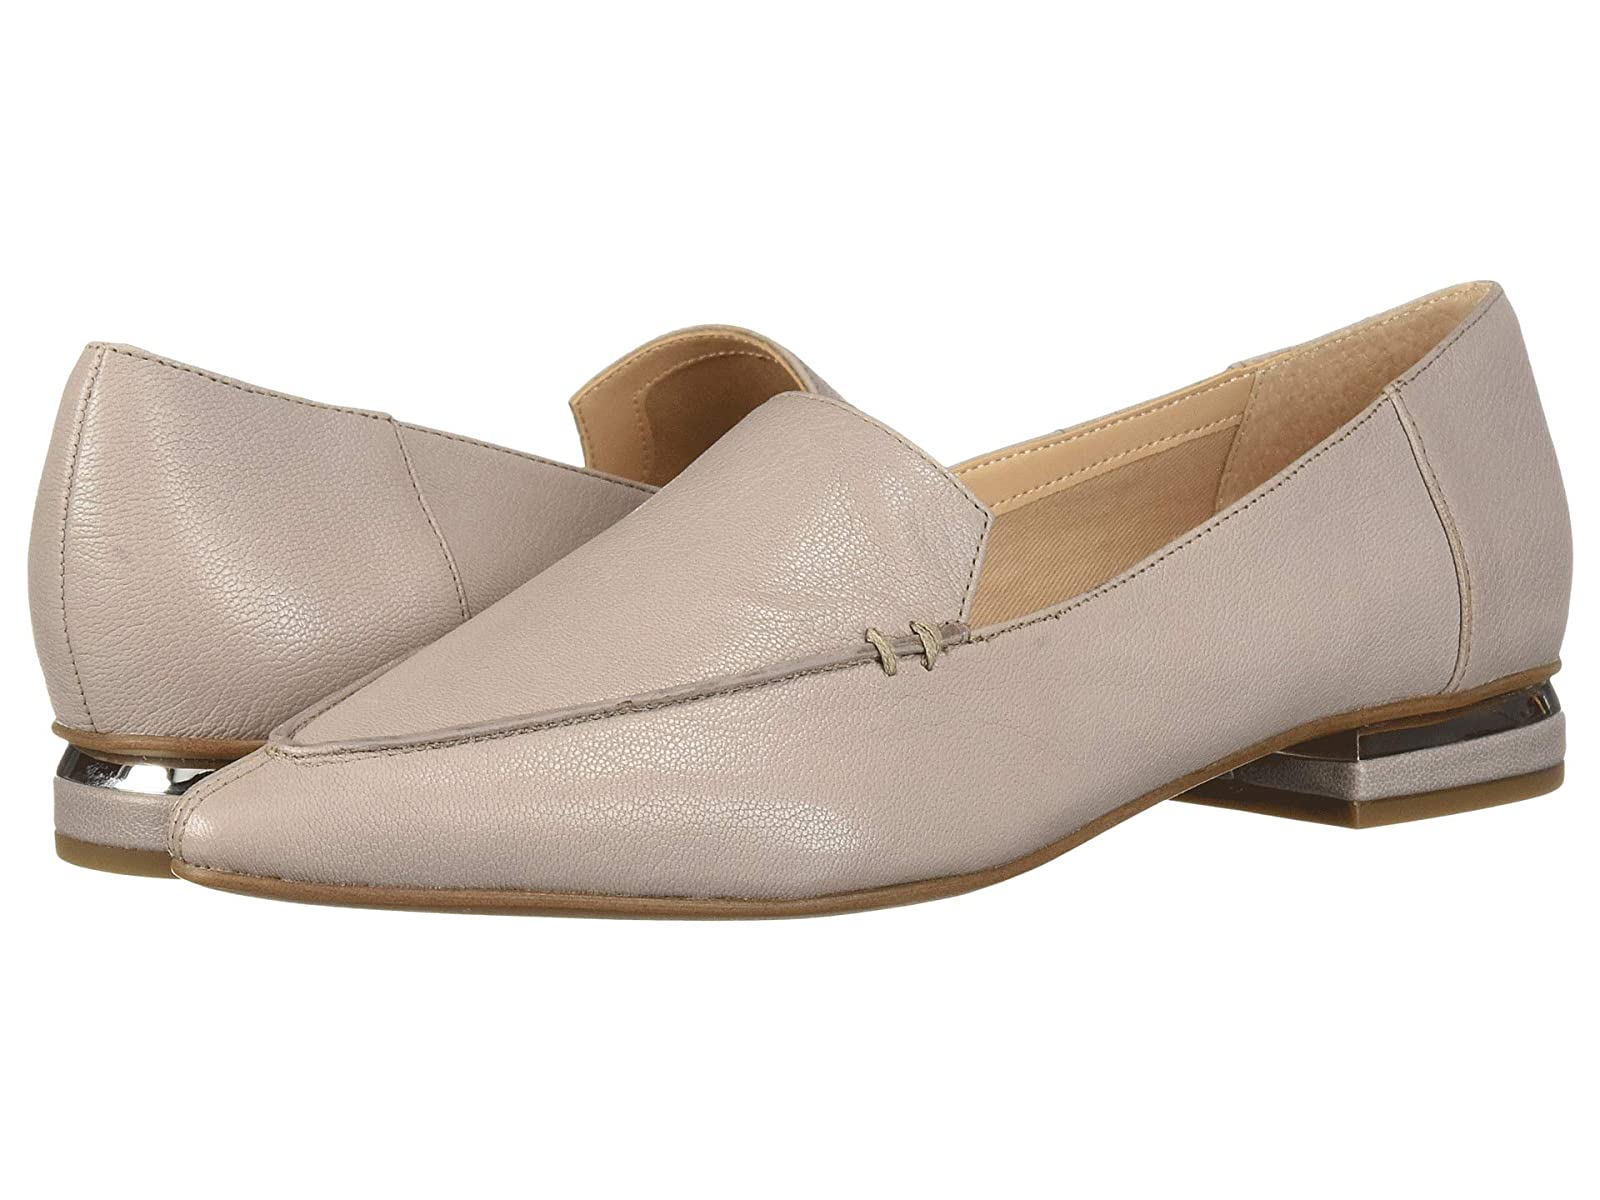 Franco Sarto StarlandAtmospheric grades have affordable shoes